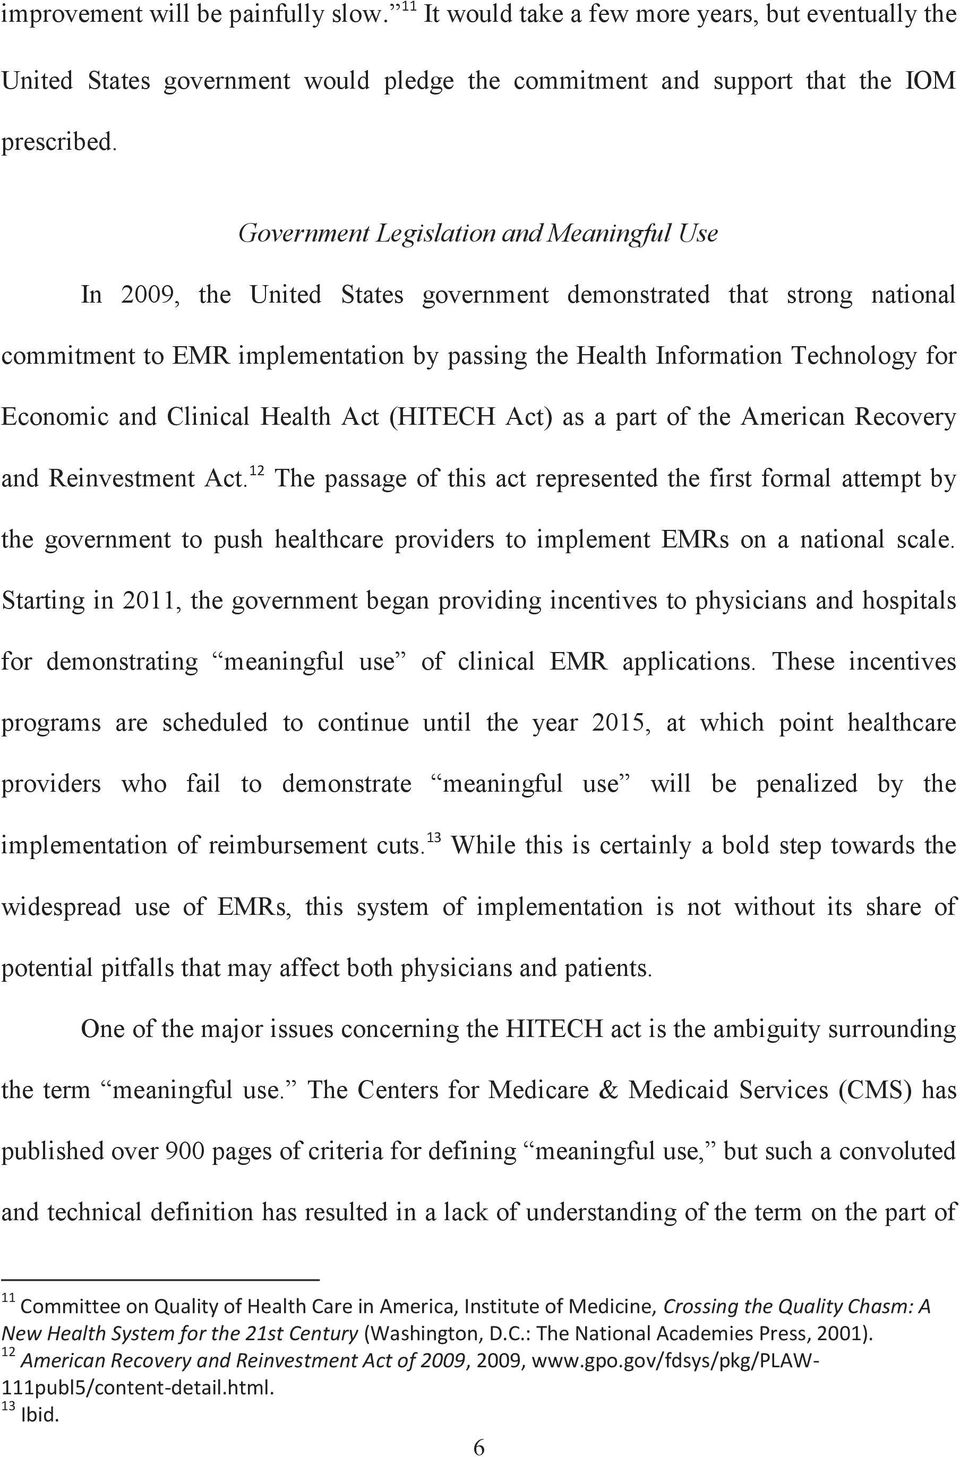 Economic and Clinical Health Act (HITECH Act) as a part of the American Recovery and Reinvestment Act.